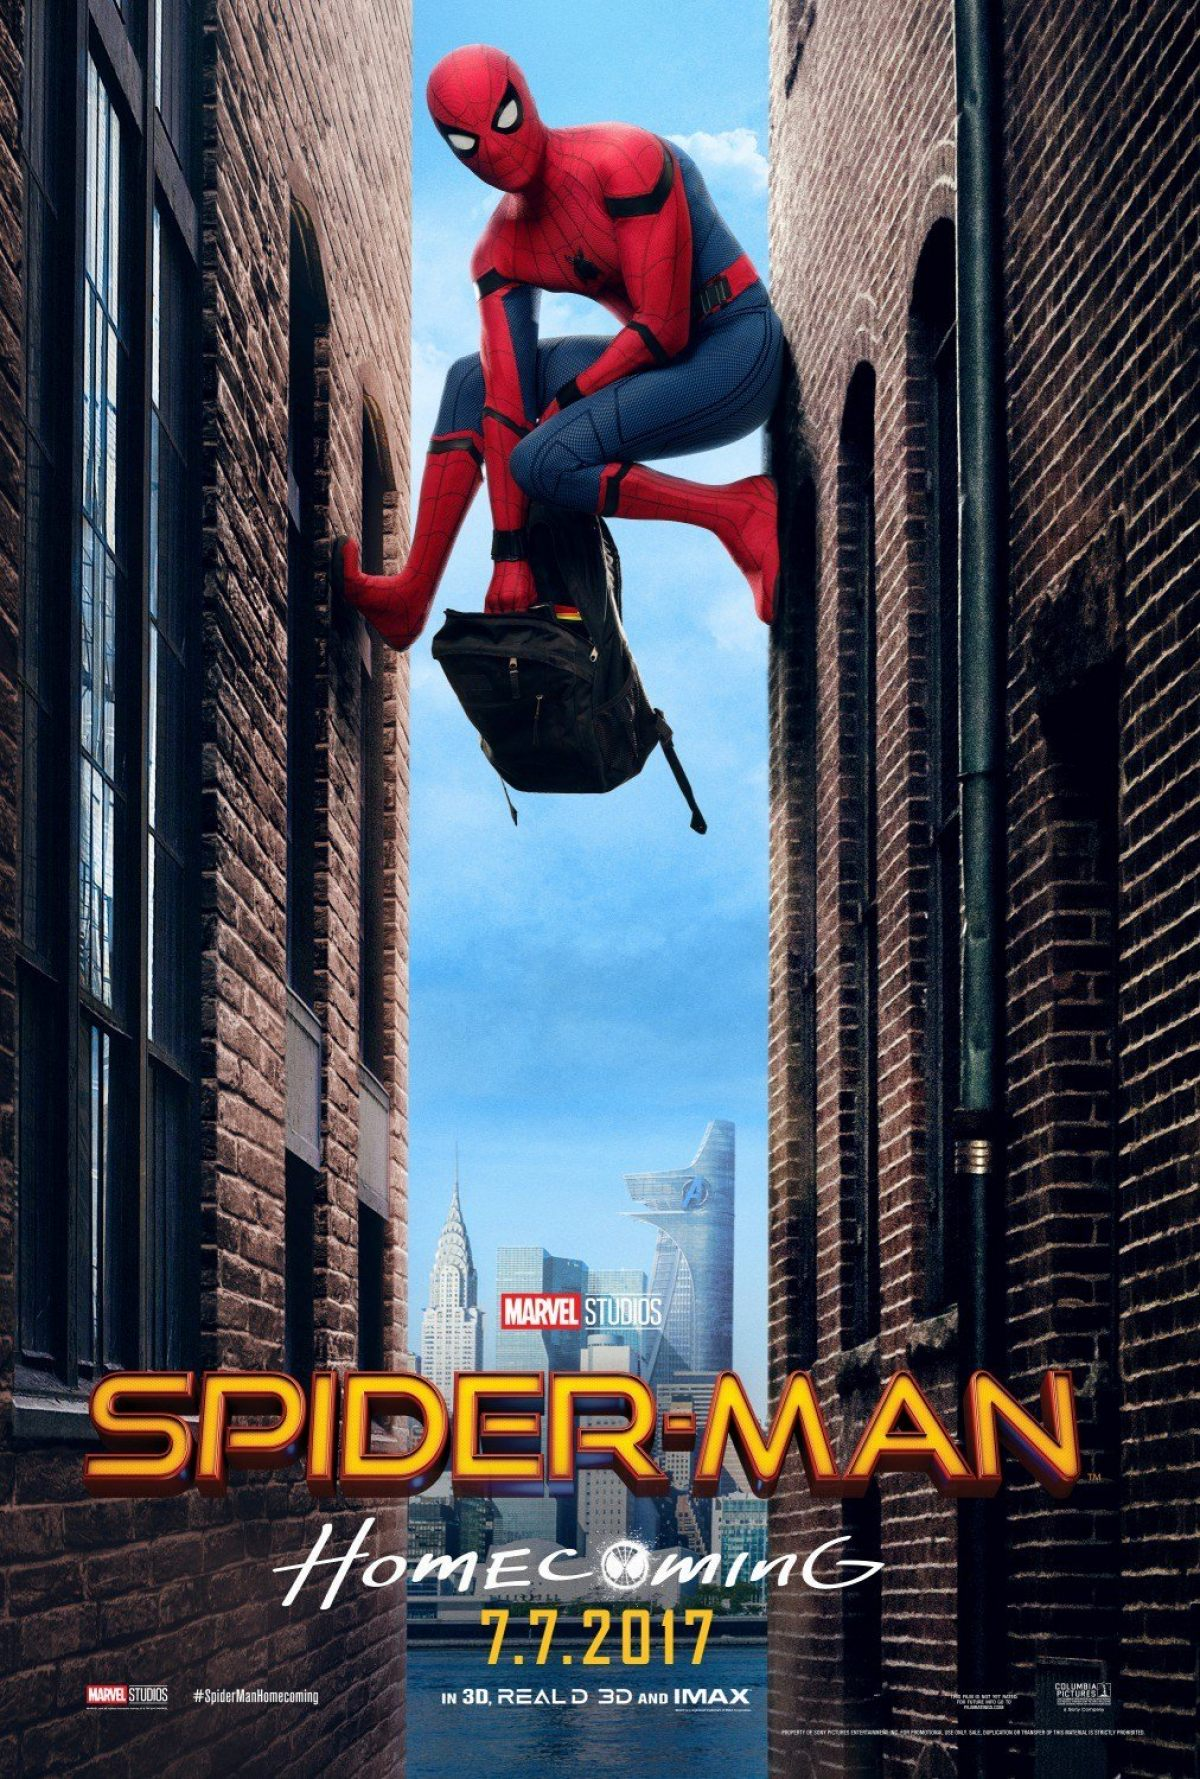 Spider-Man-Homecoming-Bad-Poster-2_1200_